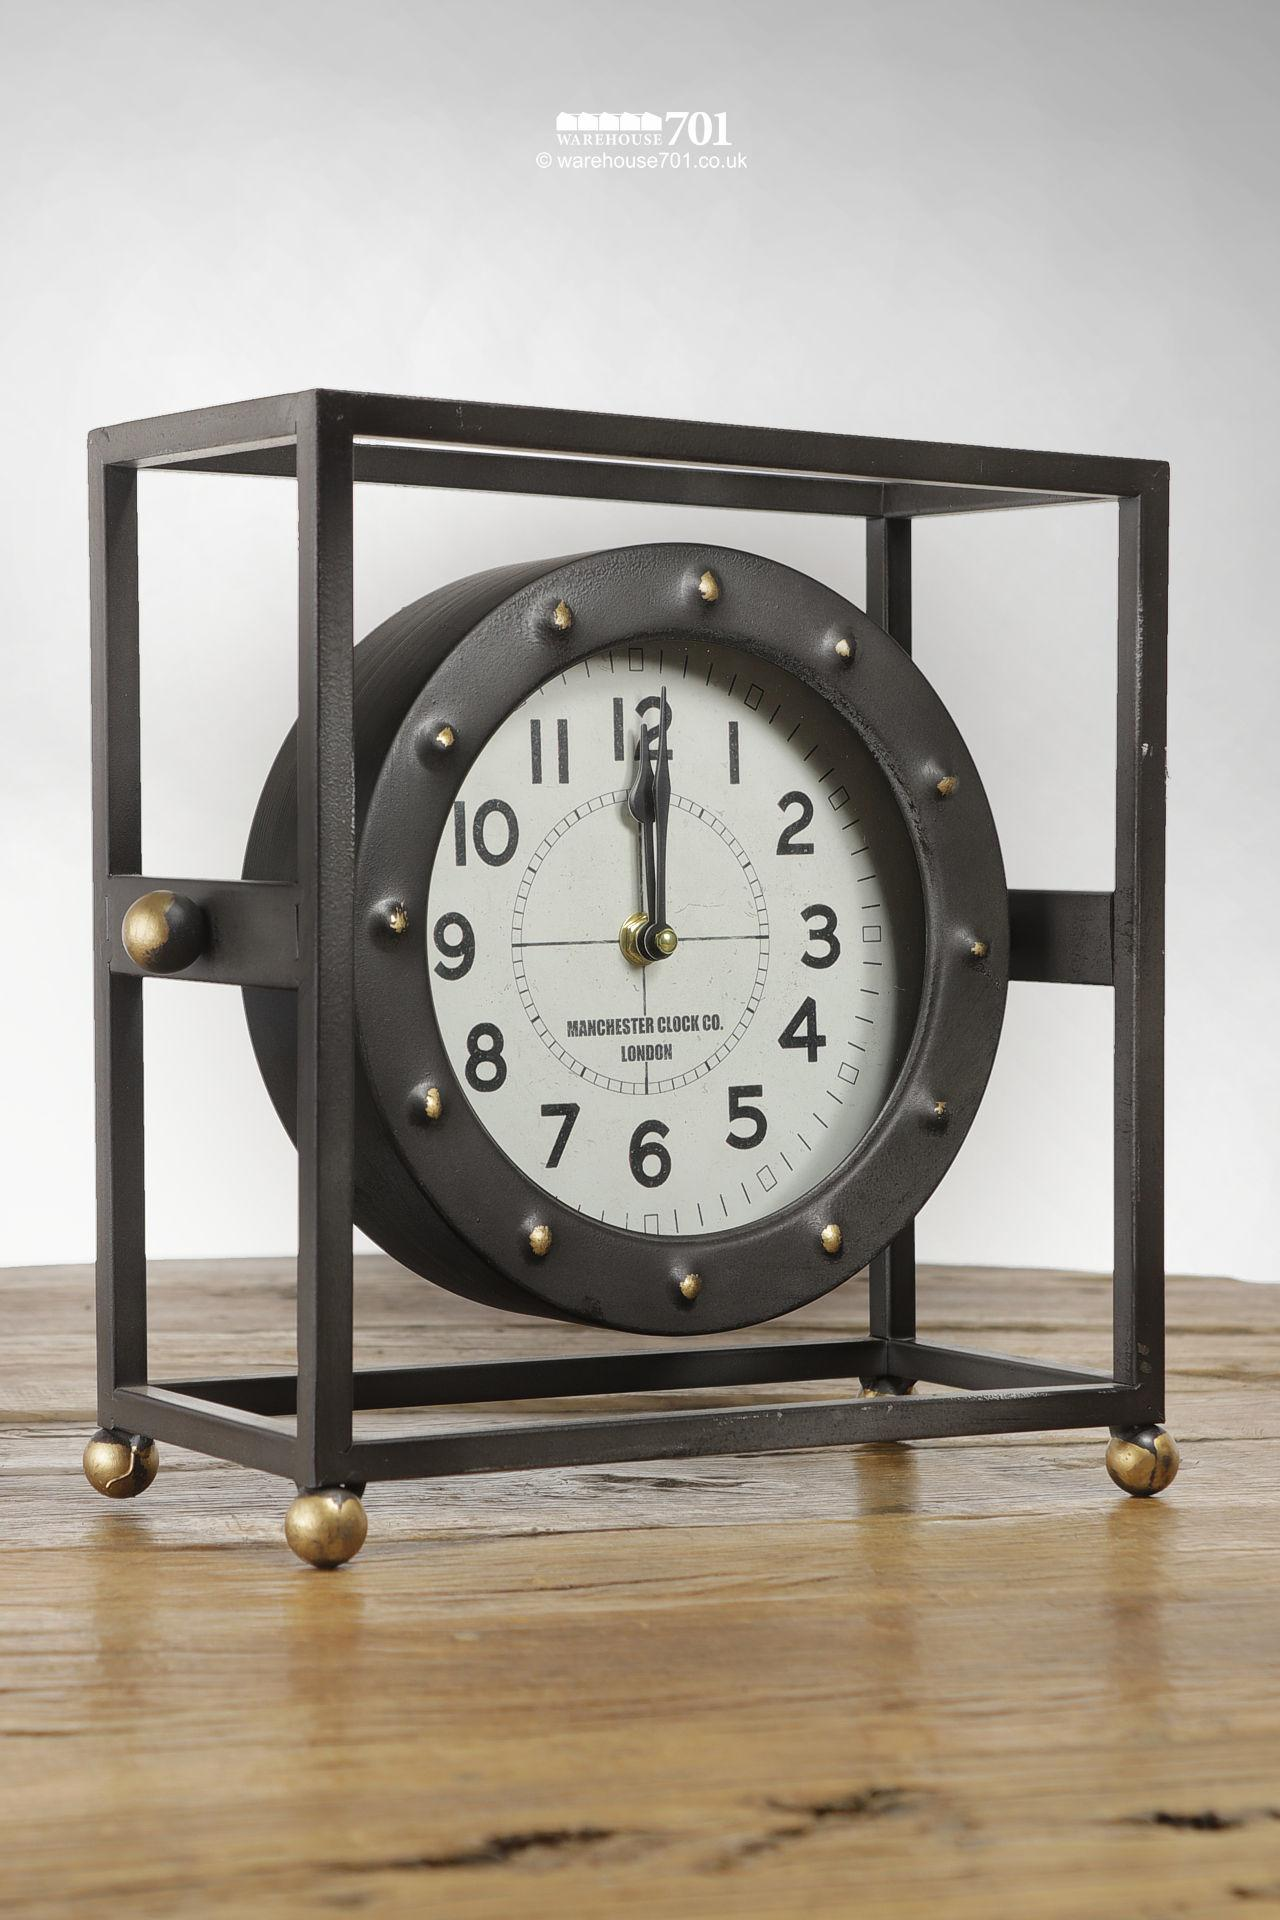 New Pivoting Framed or Cradled Industrial Style Freestanding Clock #3